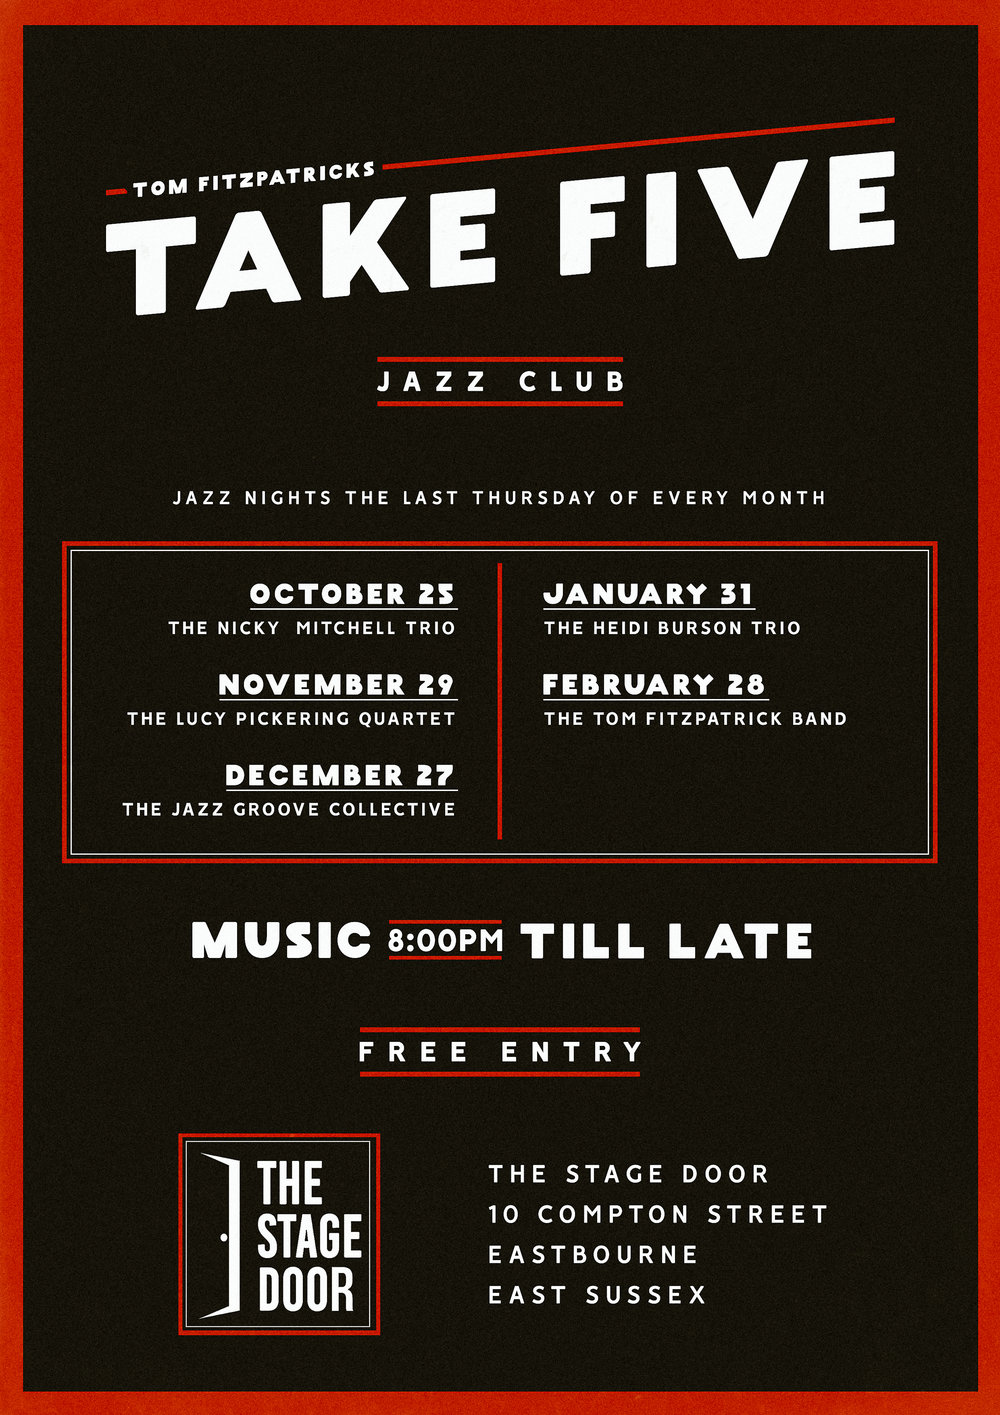 TAKE FIVE POSTER 4 EDIT.jpg